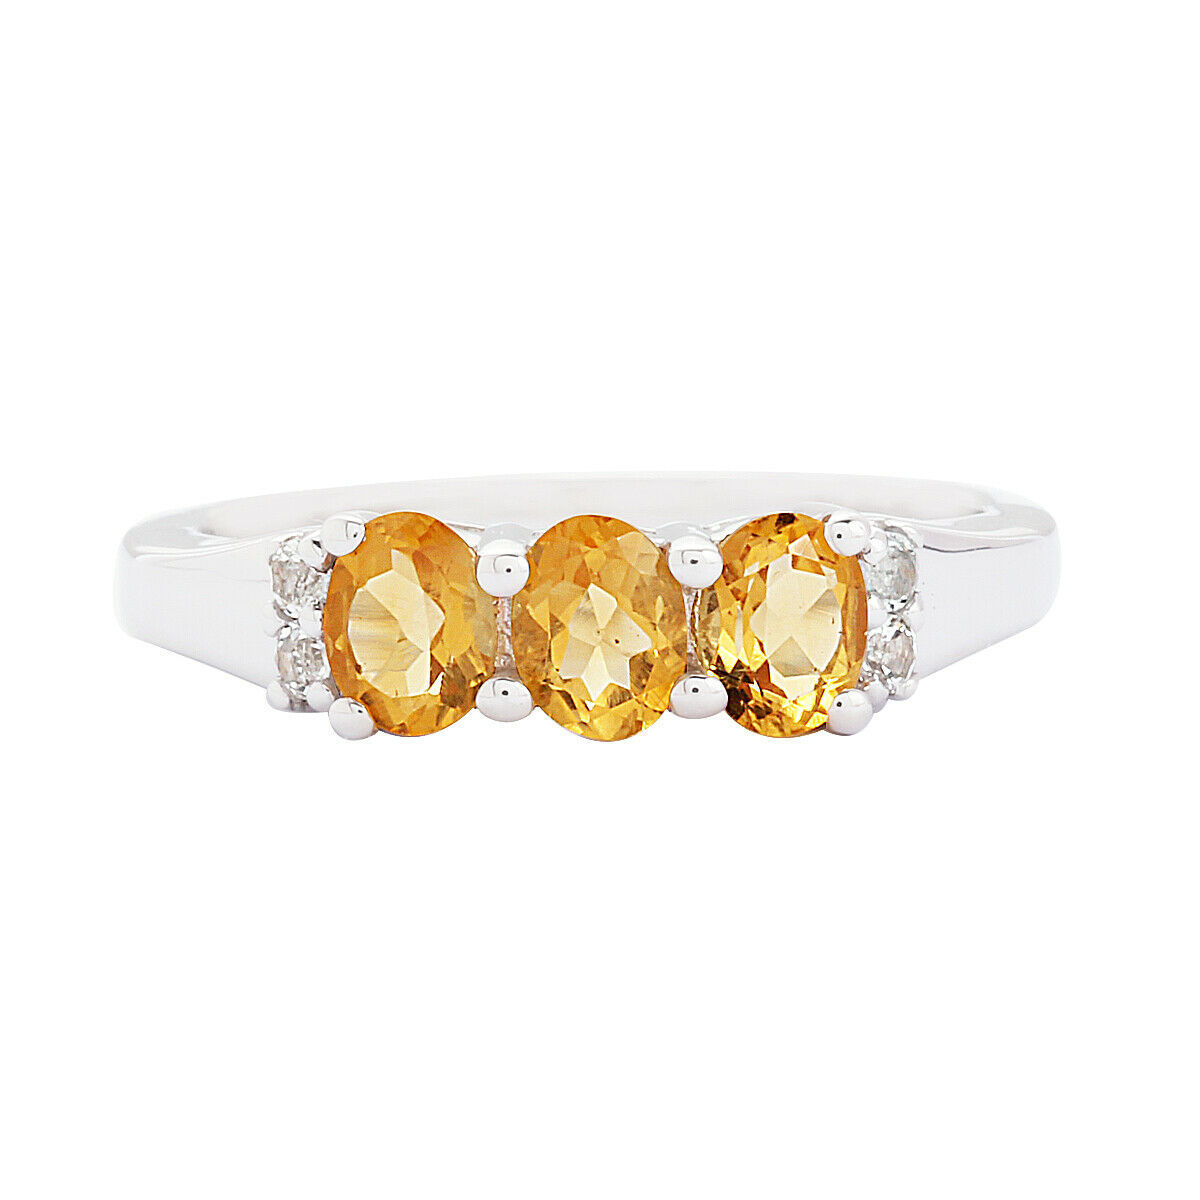 Primary image for 925 Sterling Silver Oval Cut Citrine Gemstone Three Stone Women Engagement Ring